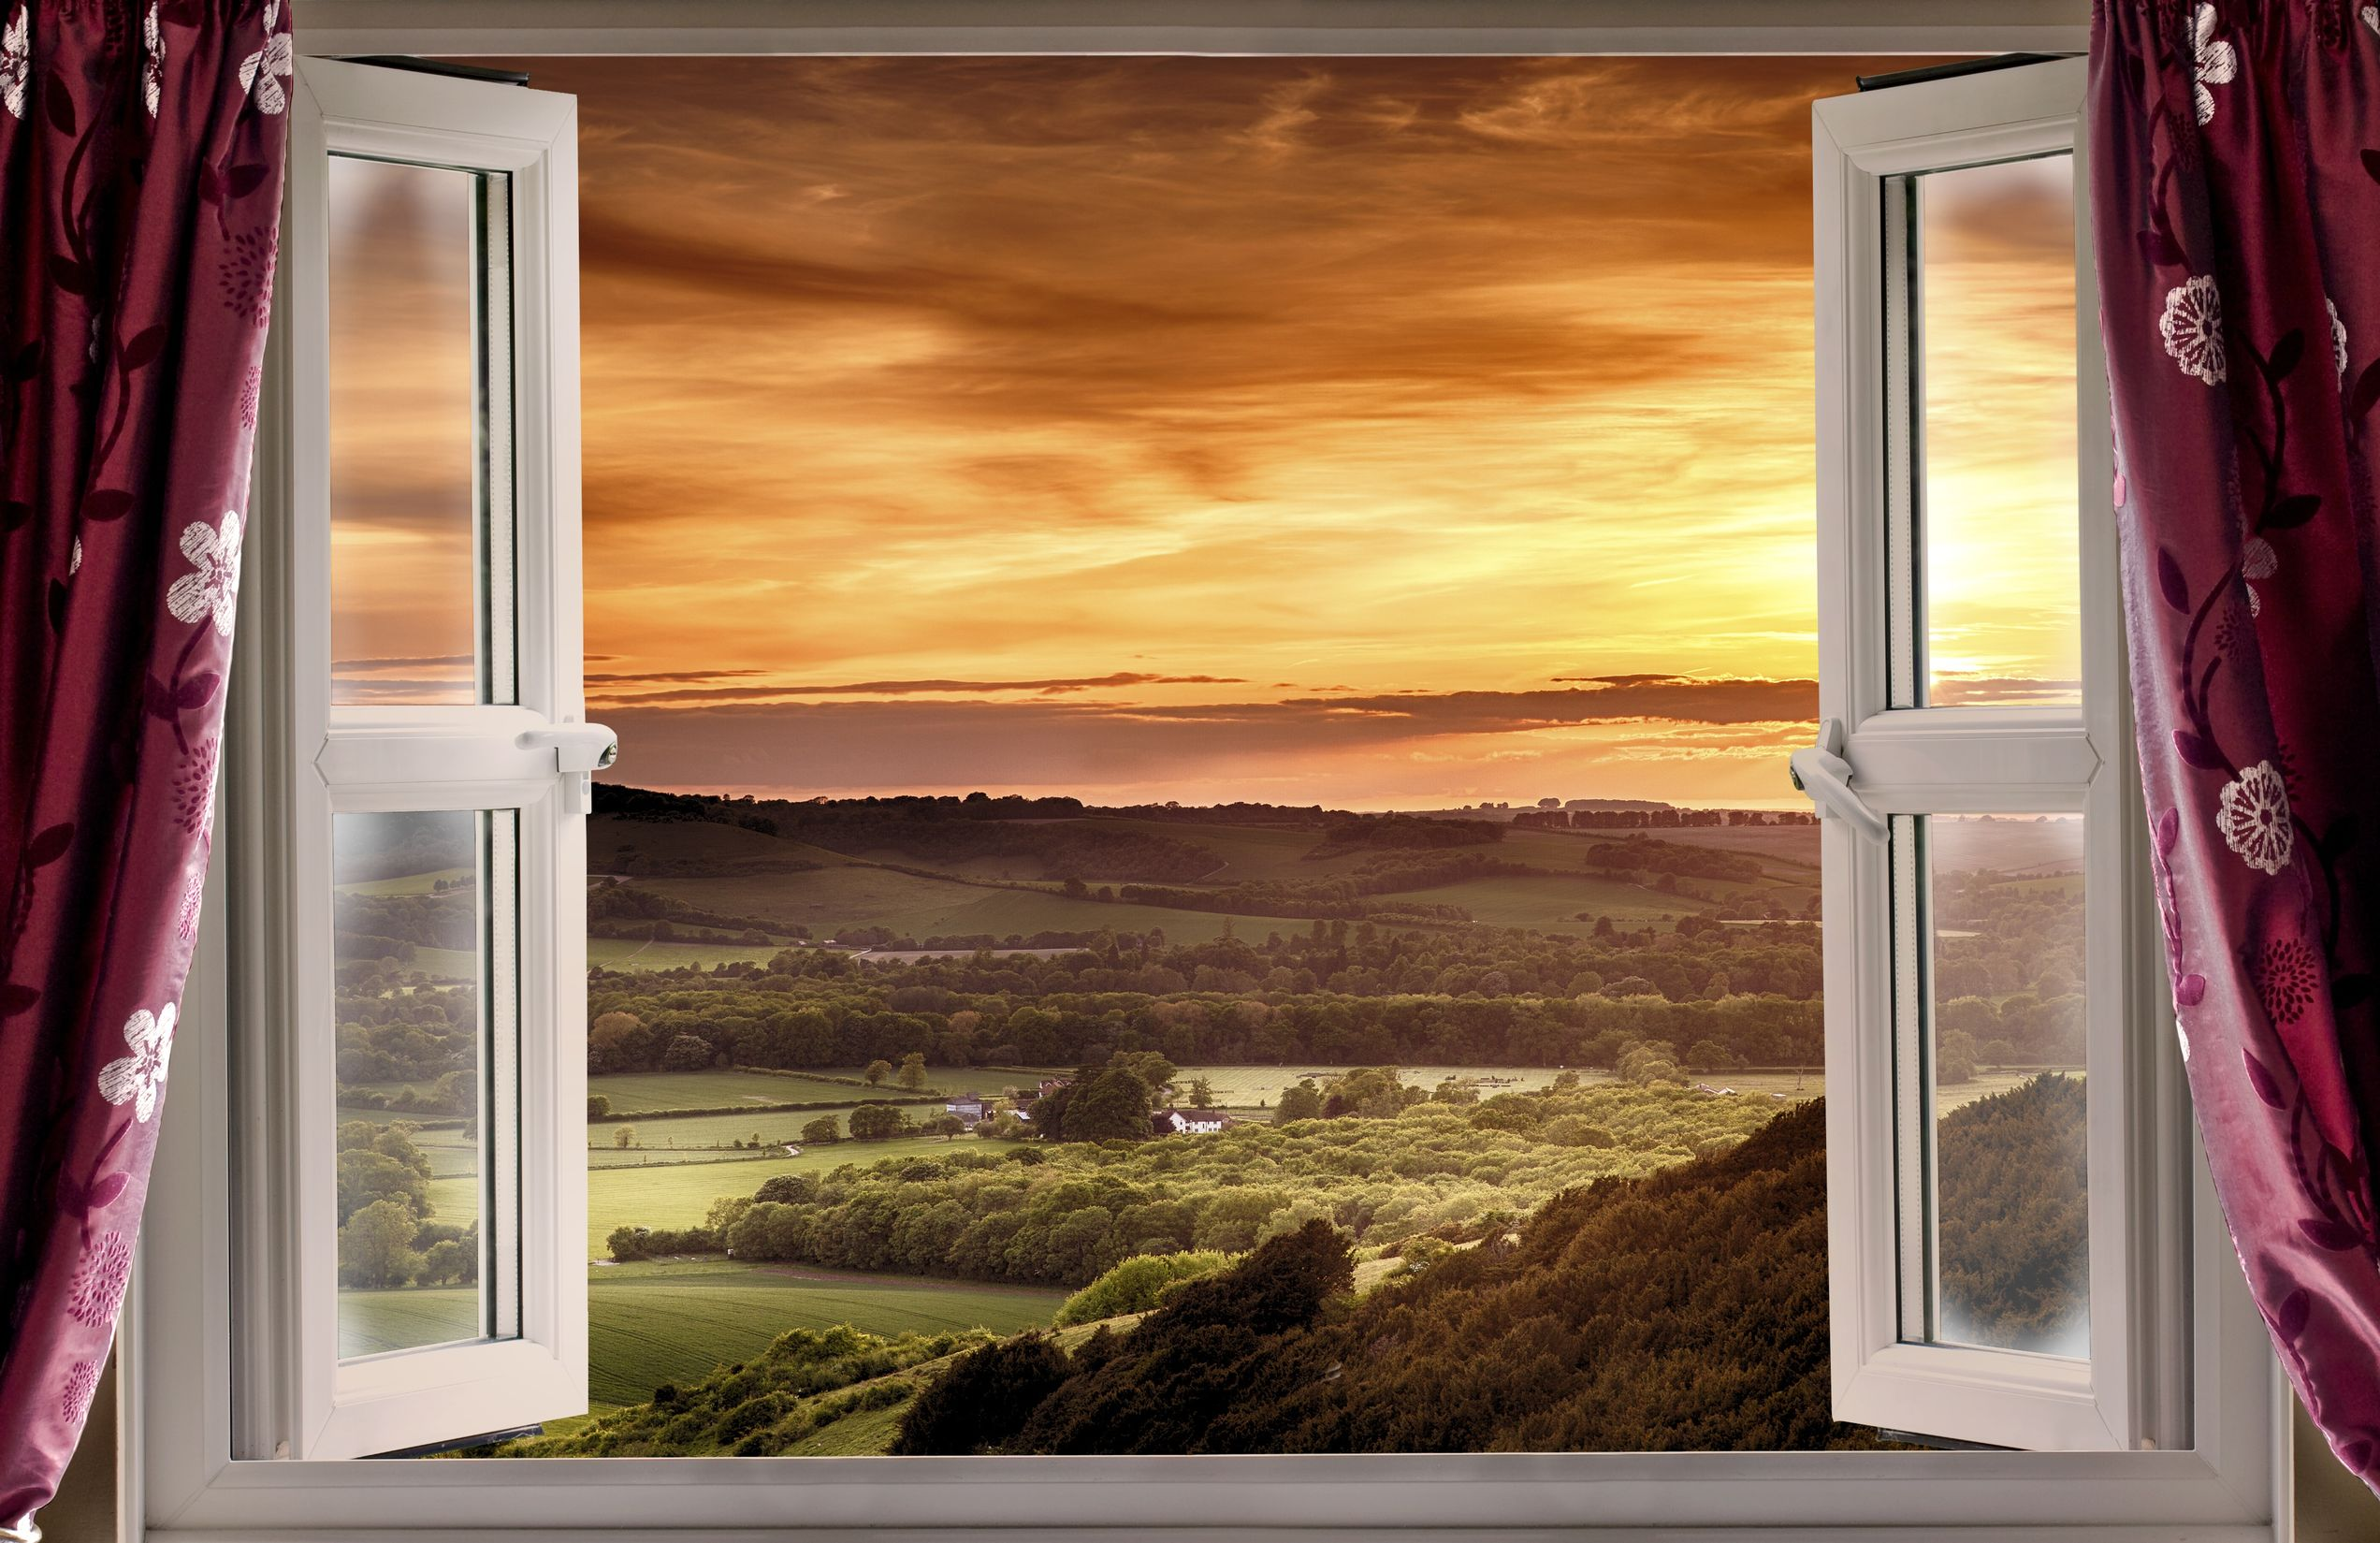 open window with a sunset view